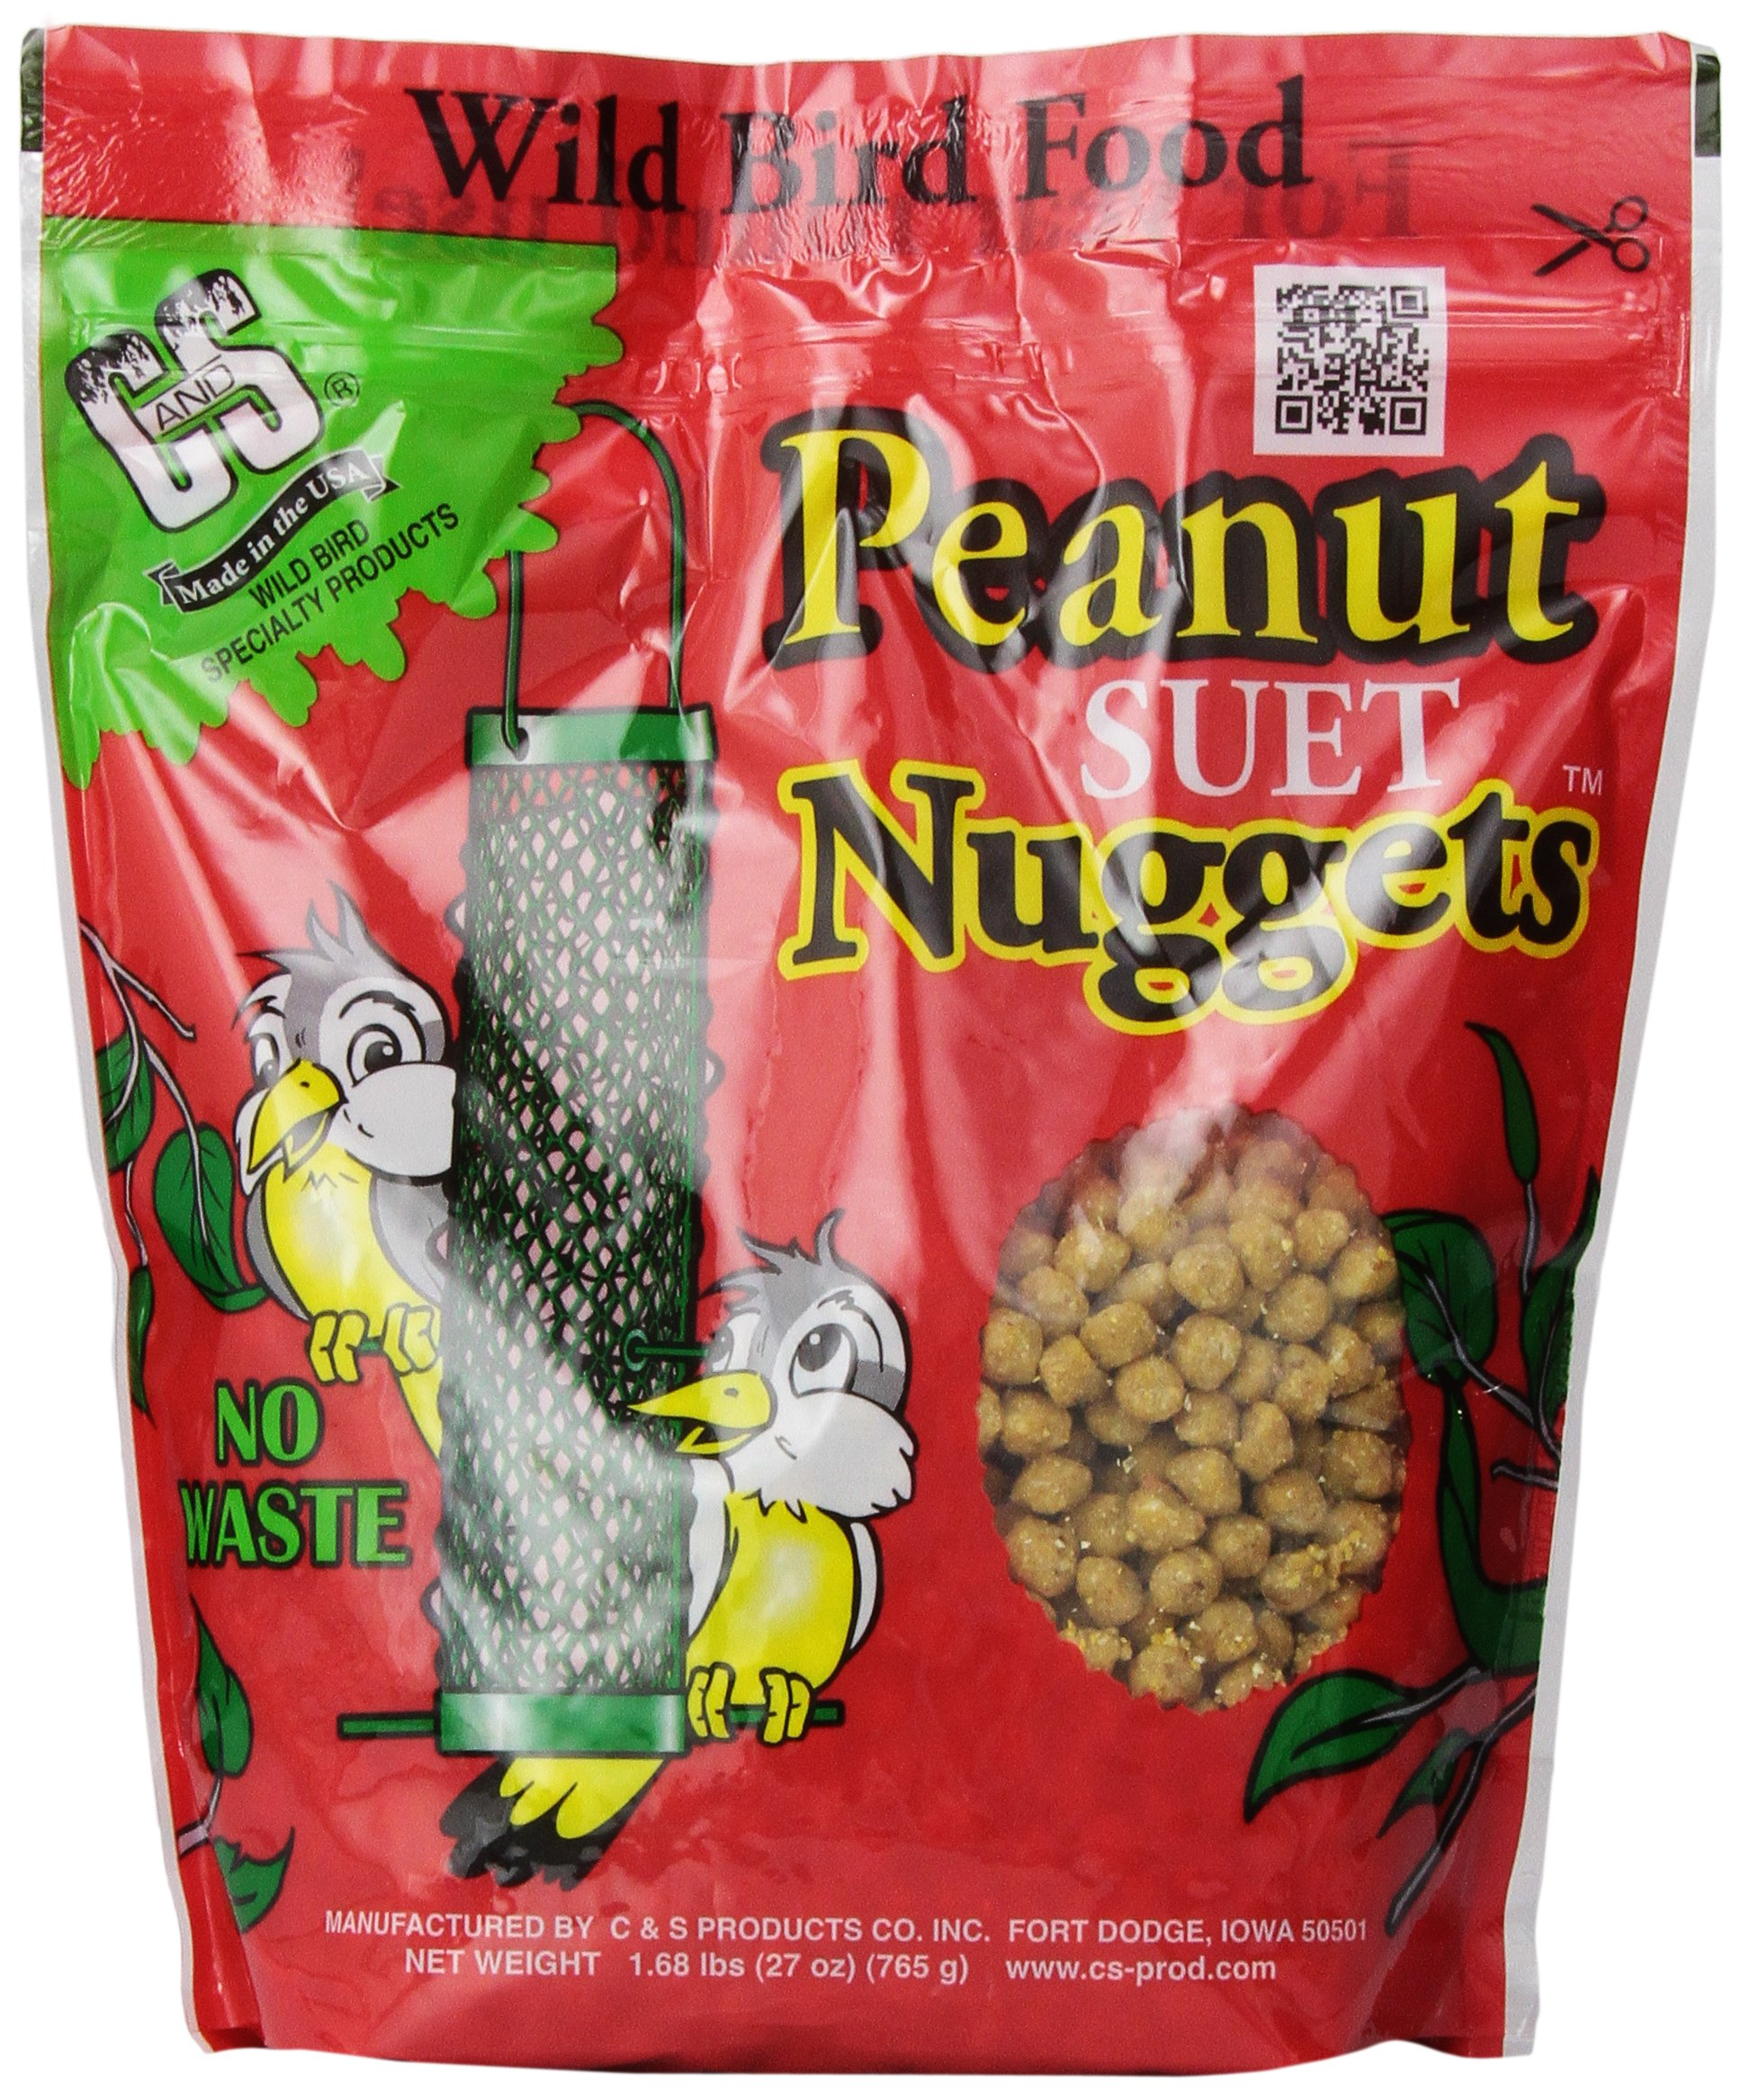 C & S Products Peanut Nuggets, Pack Of 6 by C & S Products